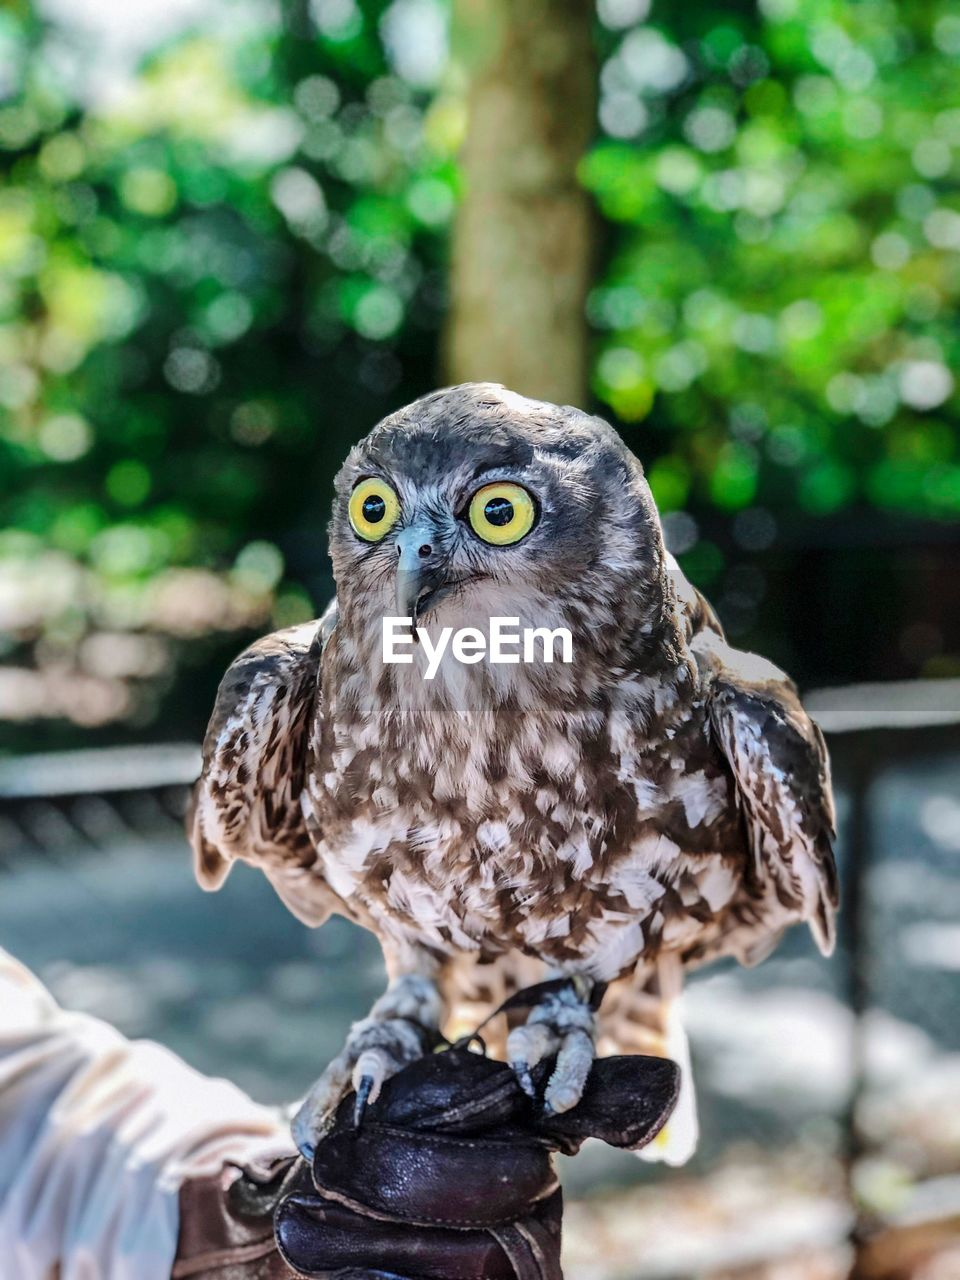 bird, vertebrate, one animal, bird of prey, animals in the wild, animal wildlife, focus on foreground, owl, day, close-up, looking at camera, portrait, perching, people, outdoors, nature, eagle, yellow eyes